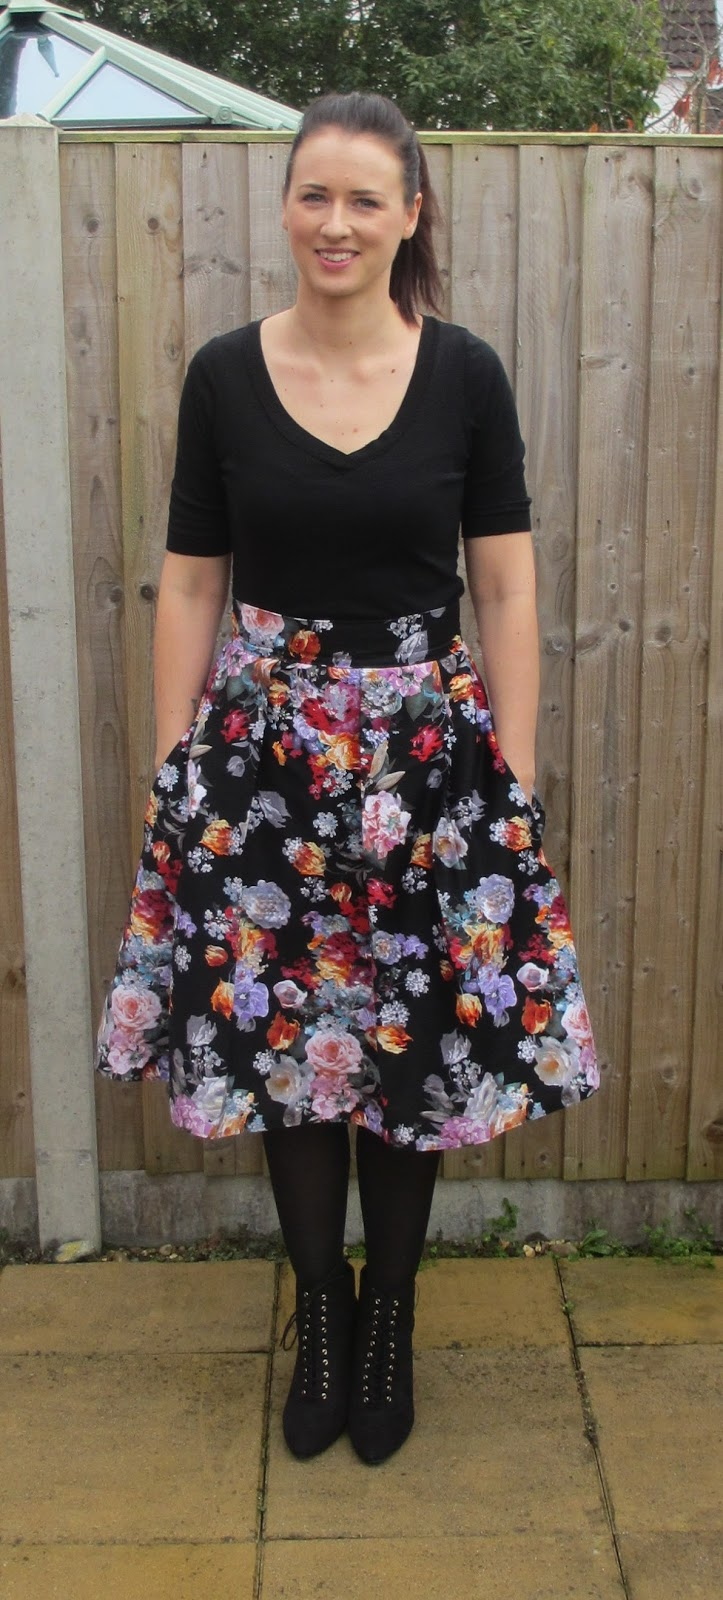 dee7e6f65 Crafty Clyde: Box Pleat Floral Midi Skirt - with Pockets!